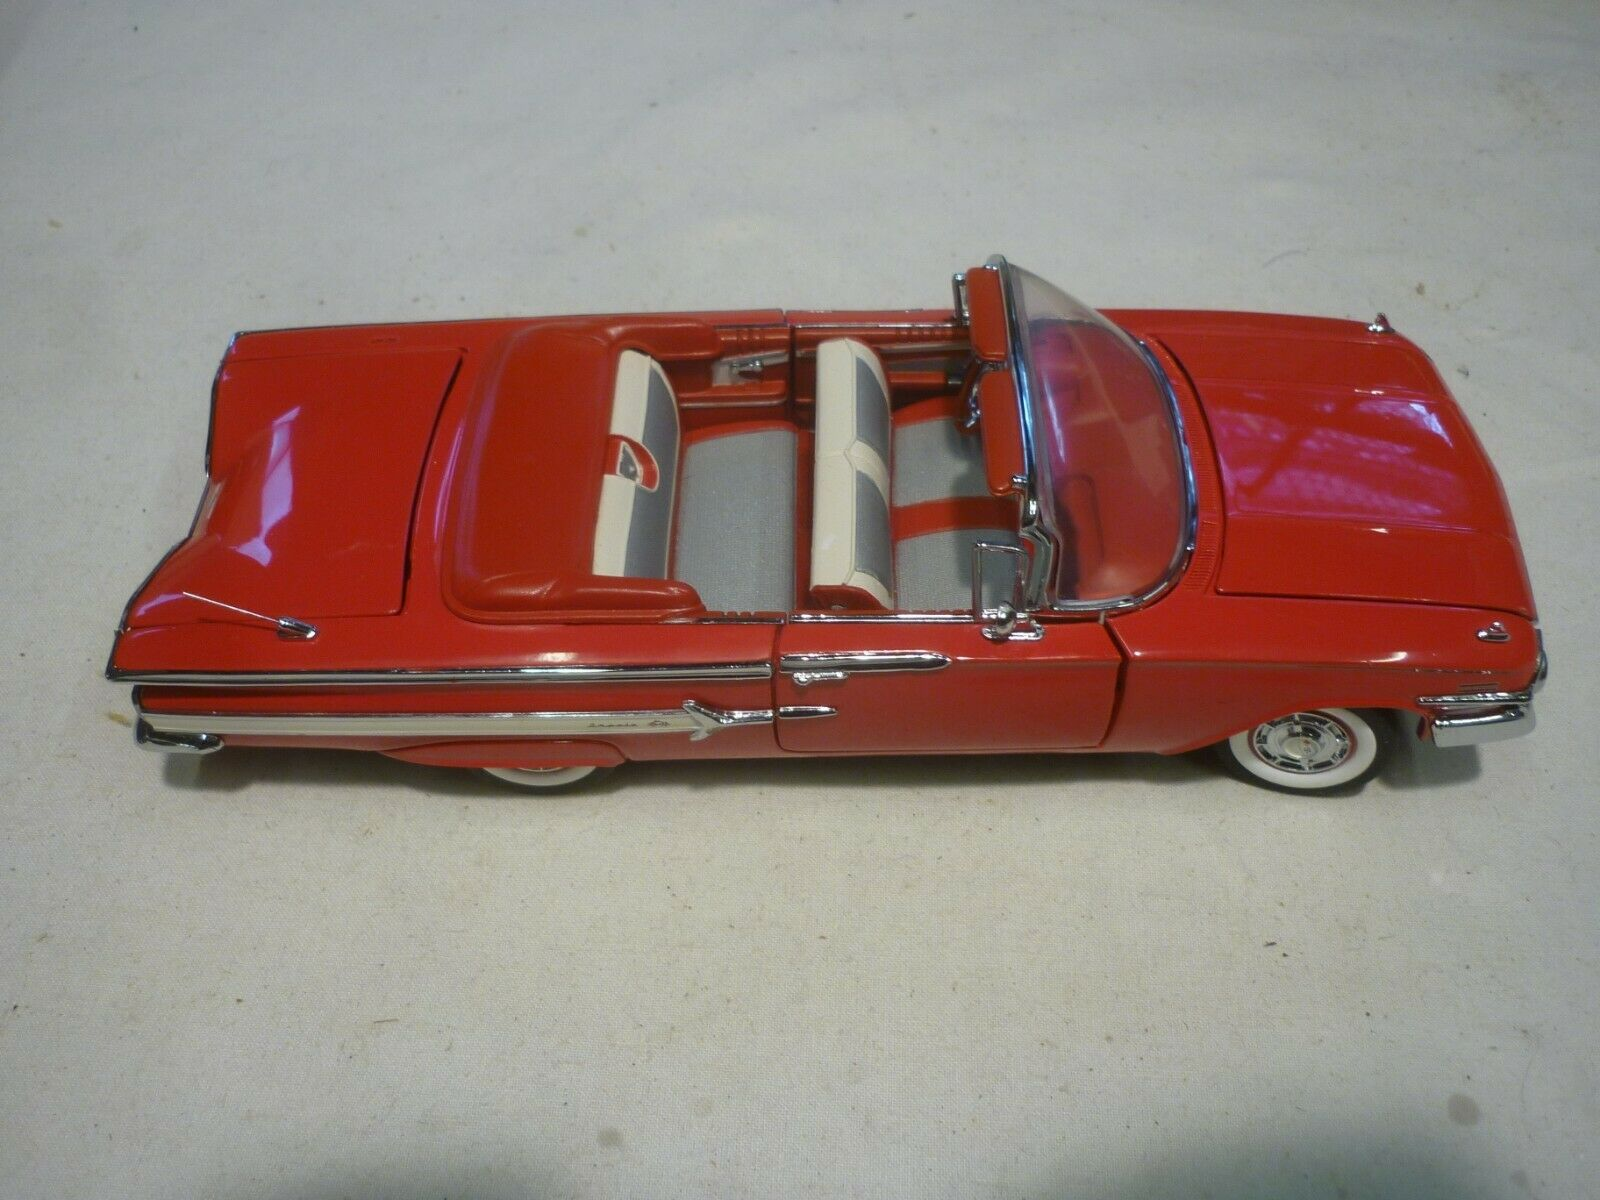 A Franklin mint scale model car of a 1960 Chevrolet impala. no box or paperwork